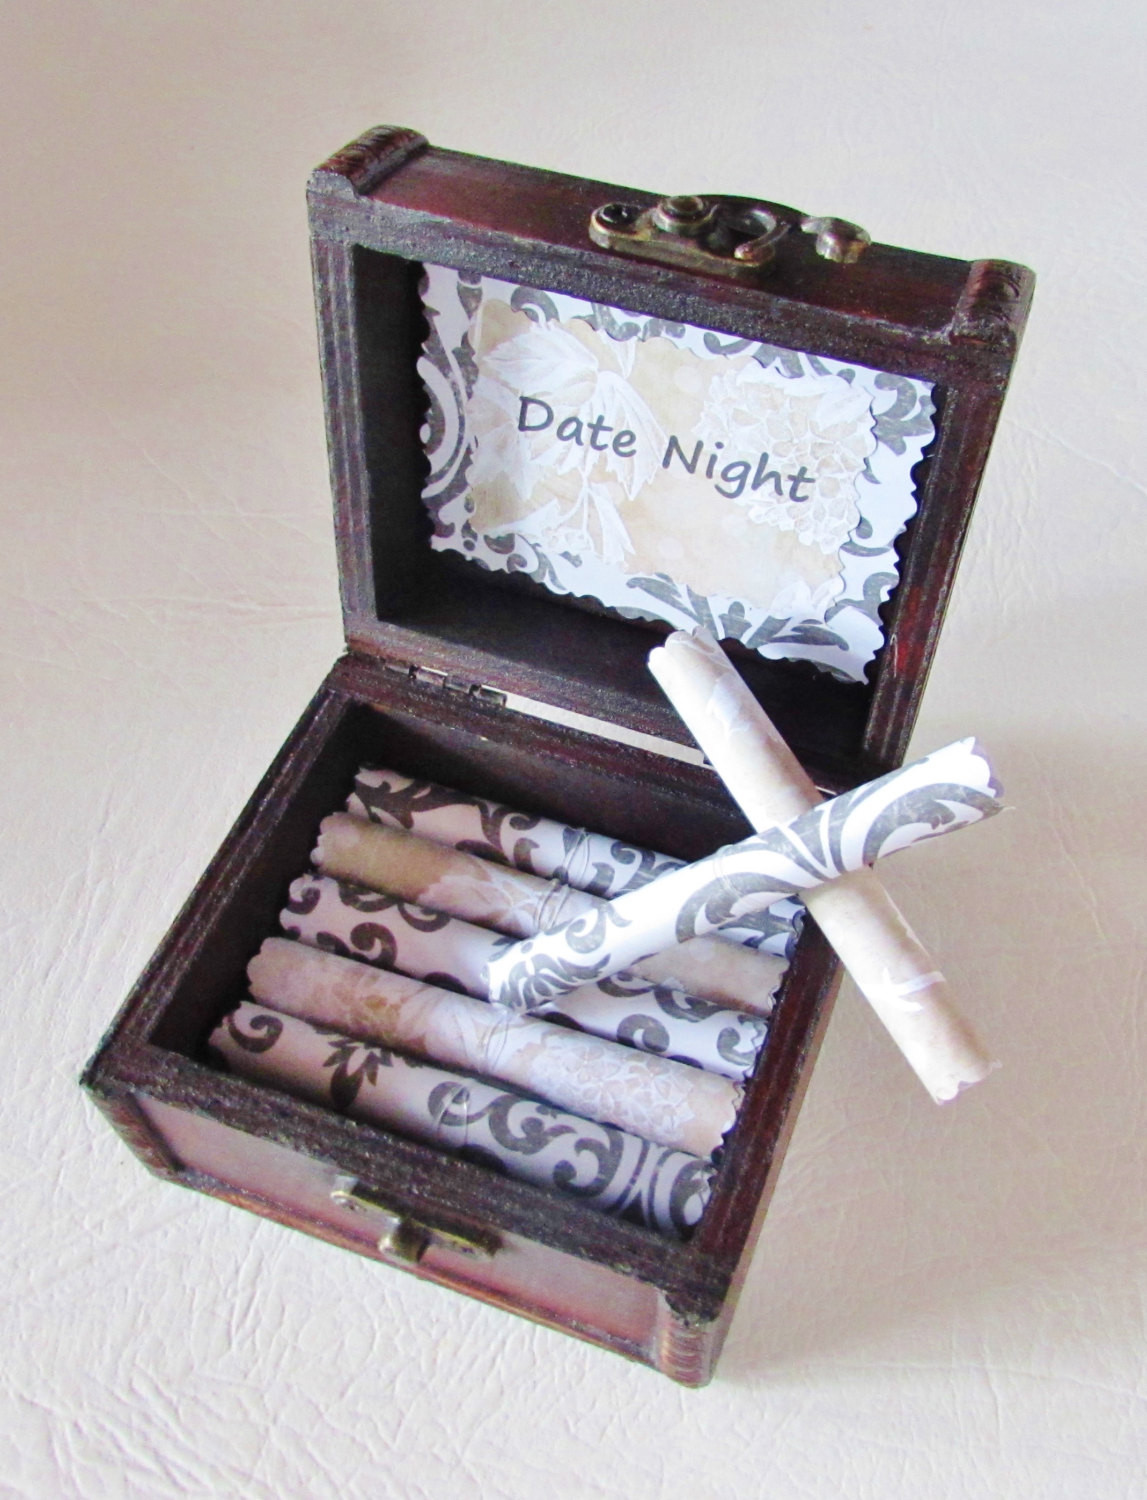 Best ideas about Wife Gift Ideas . Save or Pin Girlfriend Birthday Gift Wife Birthday Gift Date Night Now.